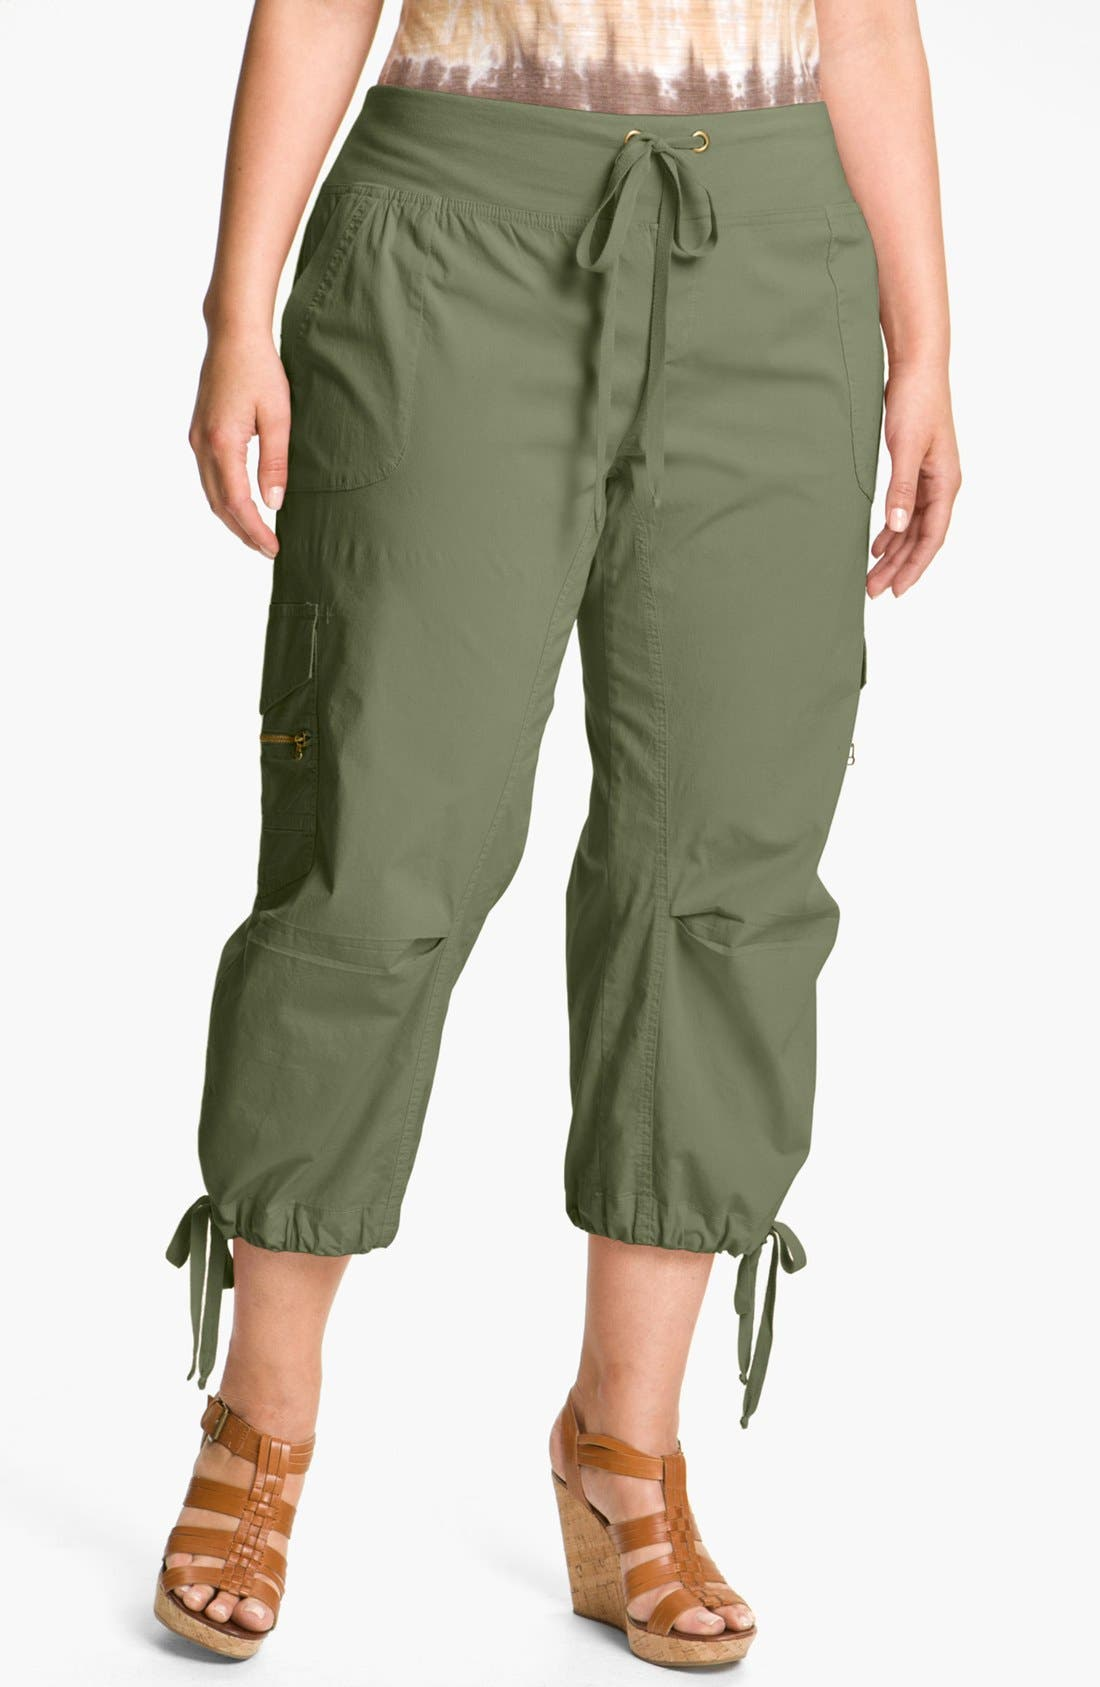 Alternate Image 1 Selected - XCVI Wearables 'Edelweiss' Crop Pants (Plus Size)